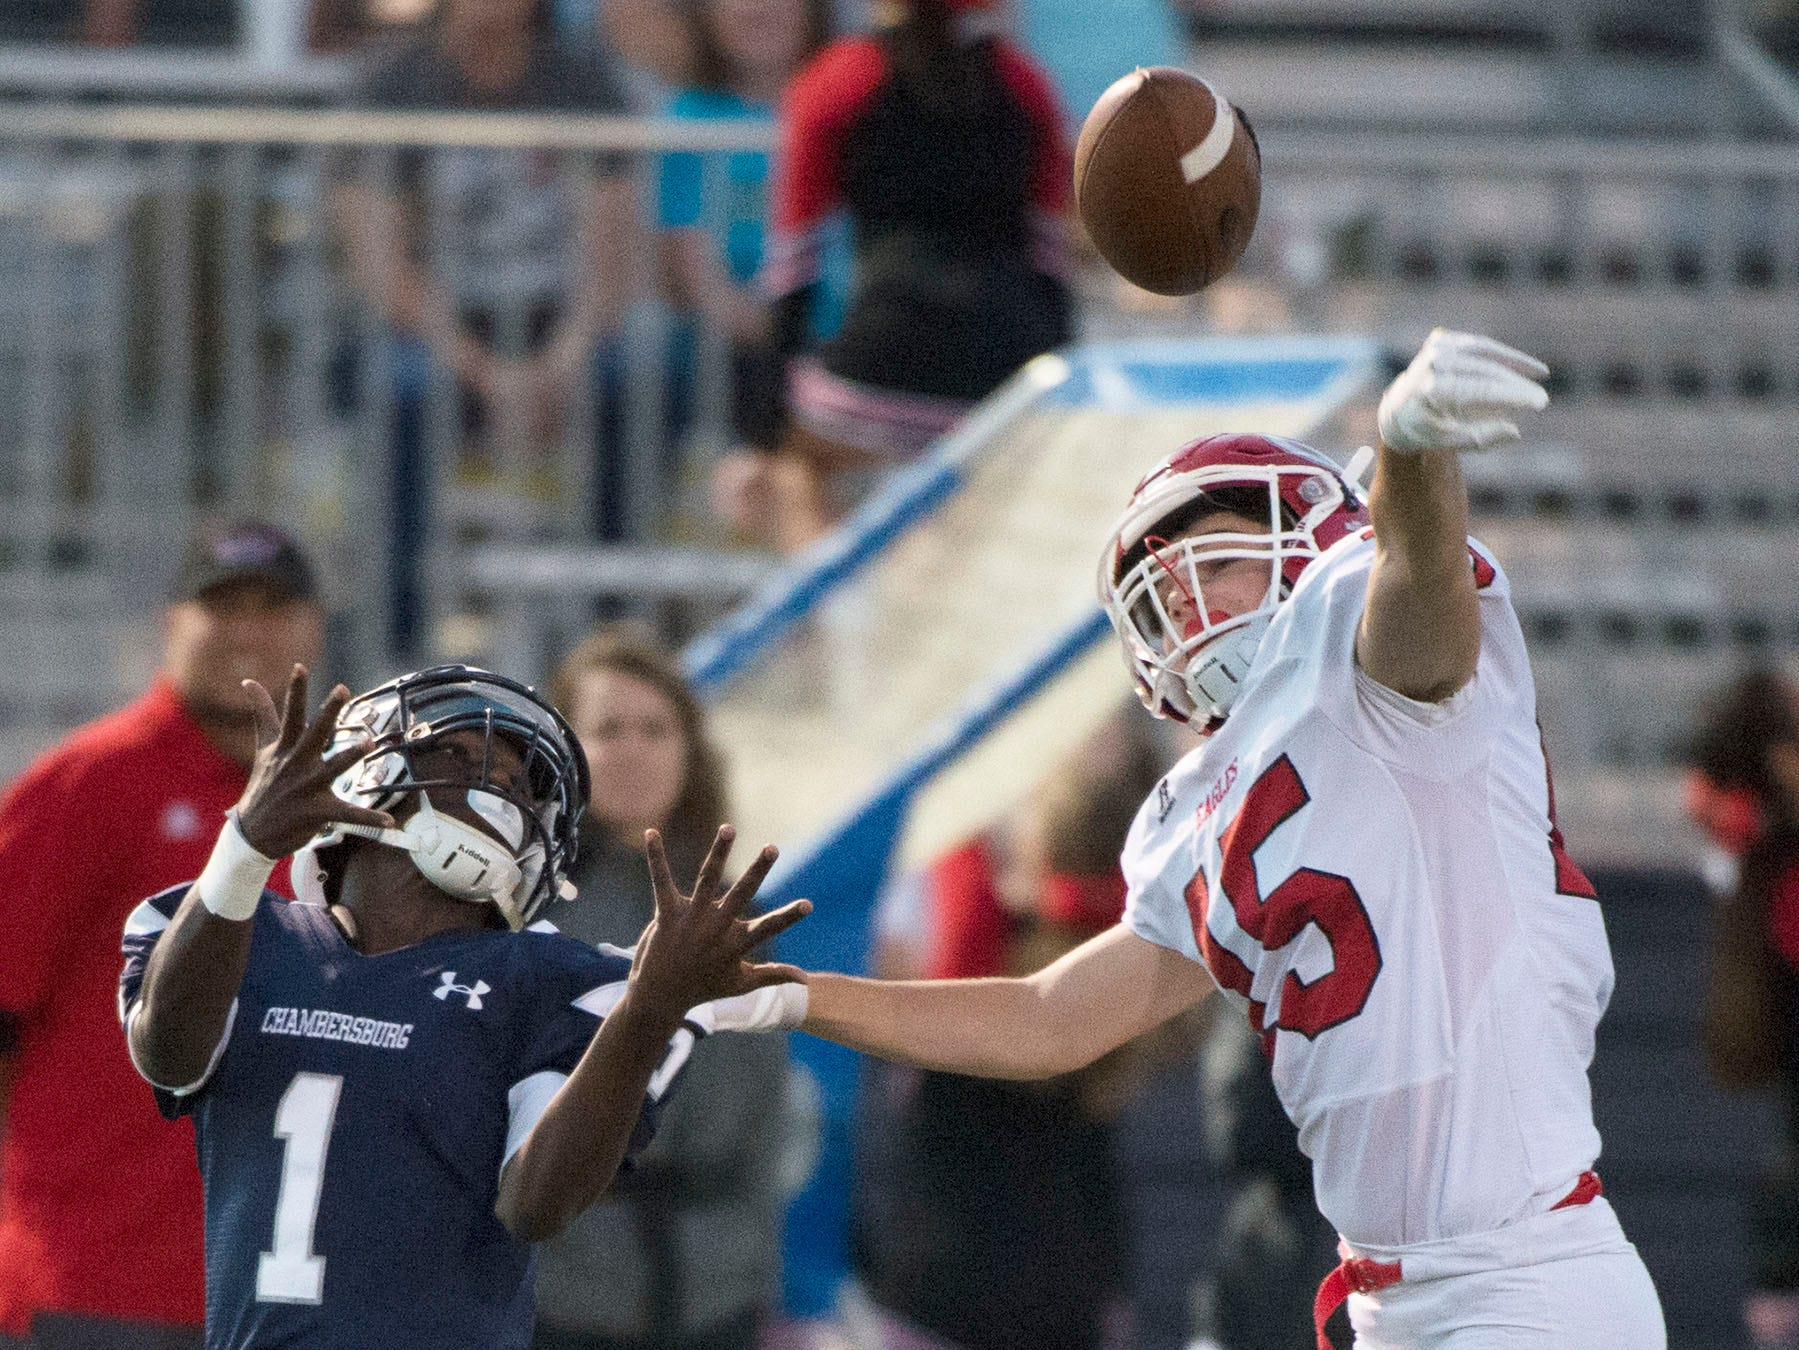 CV's Jack Istvan (15) knocks down a pass intended for Chamberburg's Kevin Lee, Jr.  Chambersburg Trojans are 5-1 after a homecoming victory over Cumberland Valley 28-14 in PIAA football on Friday, Sept. 28, 2018.